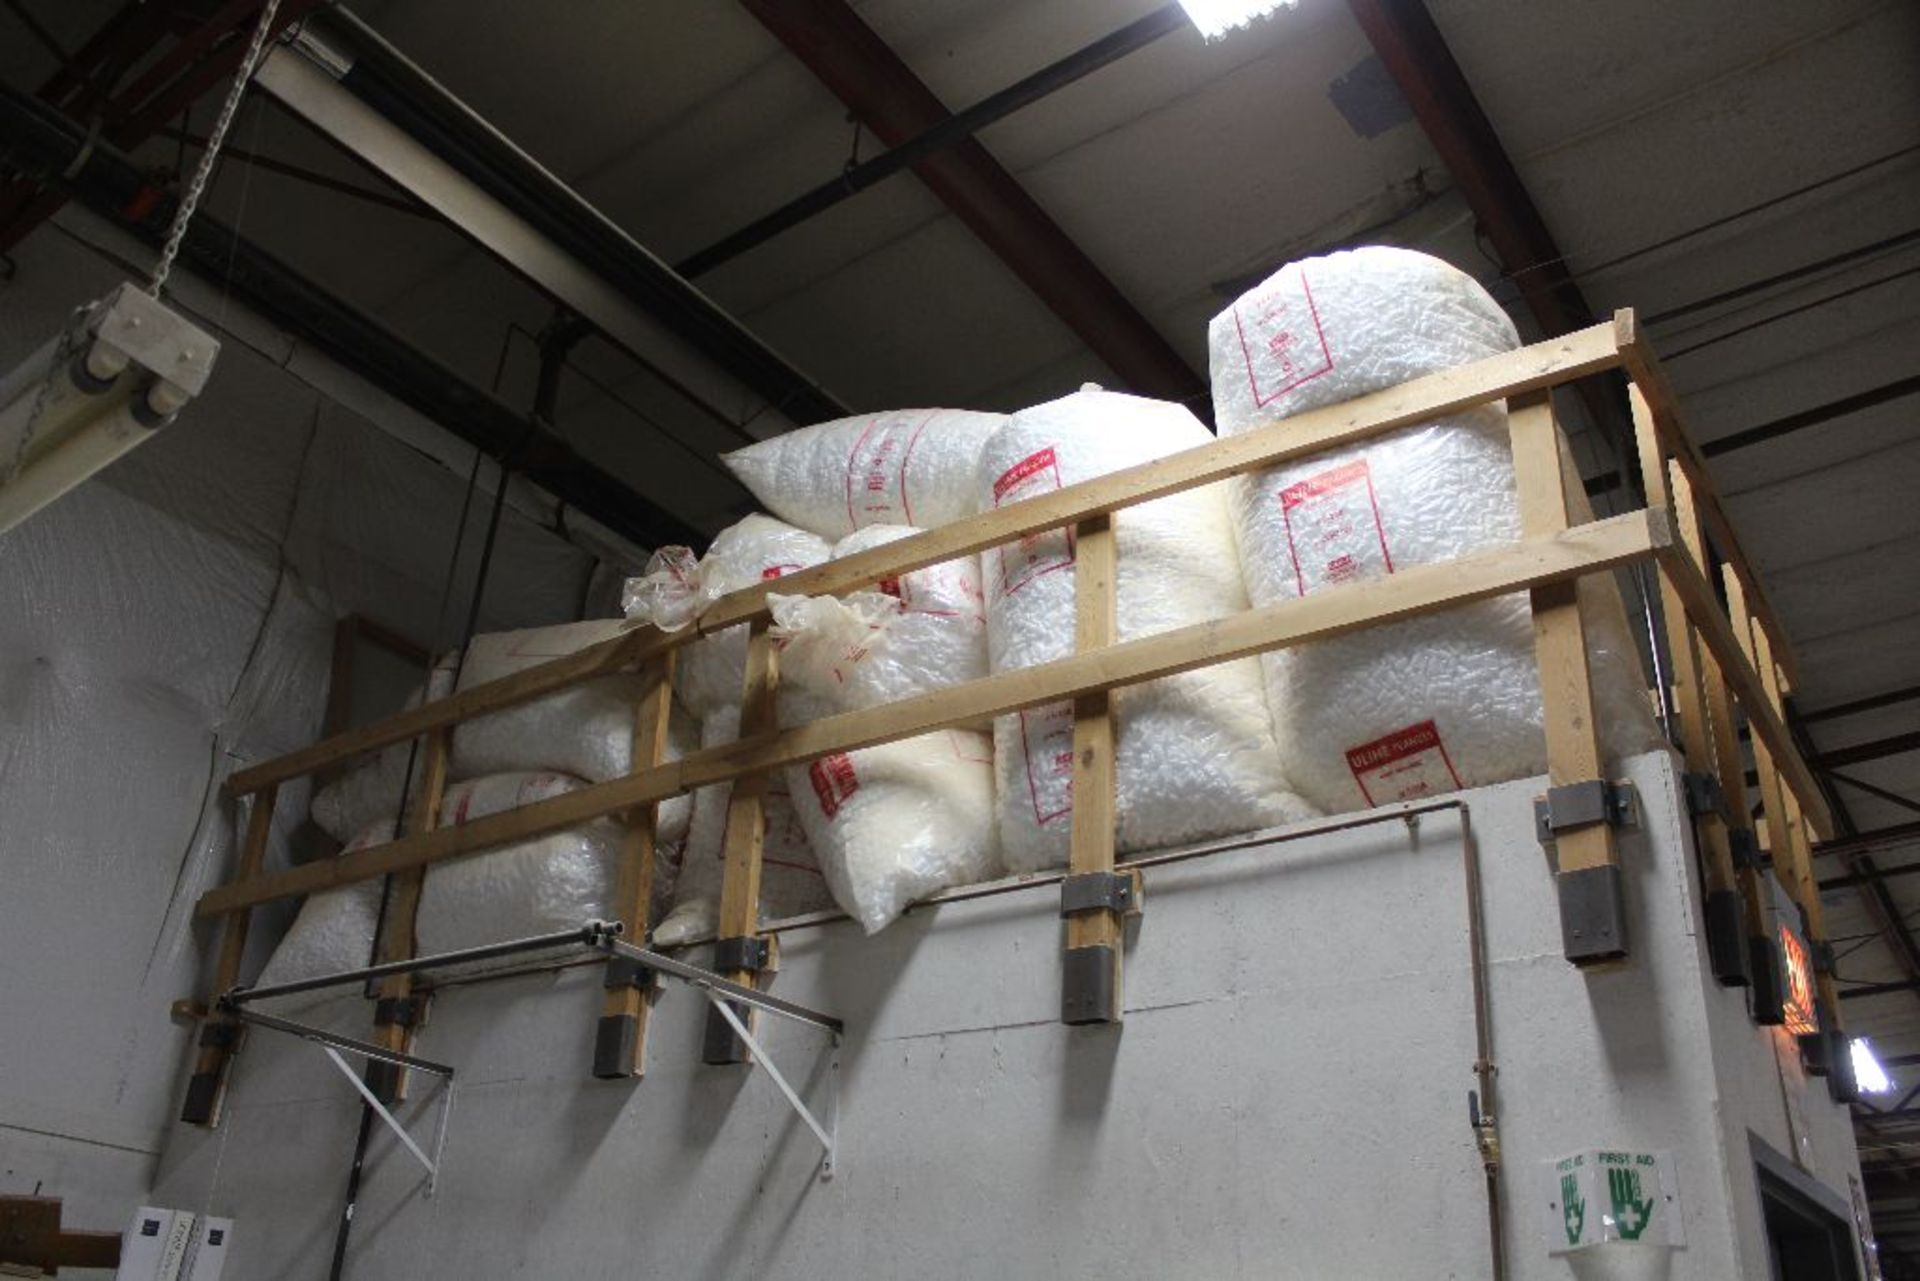 Lot 871 - Bags: U-line peanuts, (approx. 75 to 100 bags), 20 cubic feet bags.